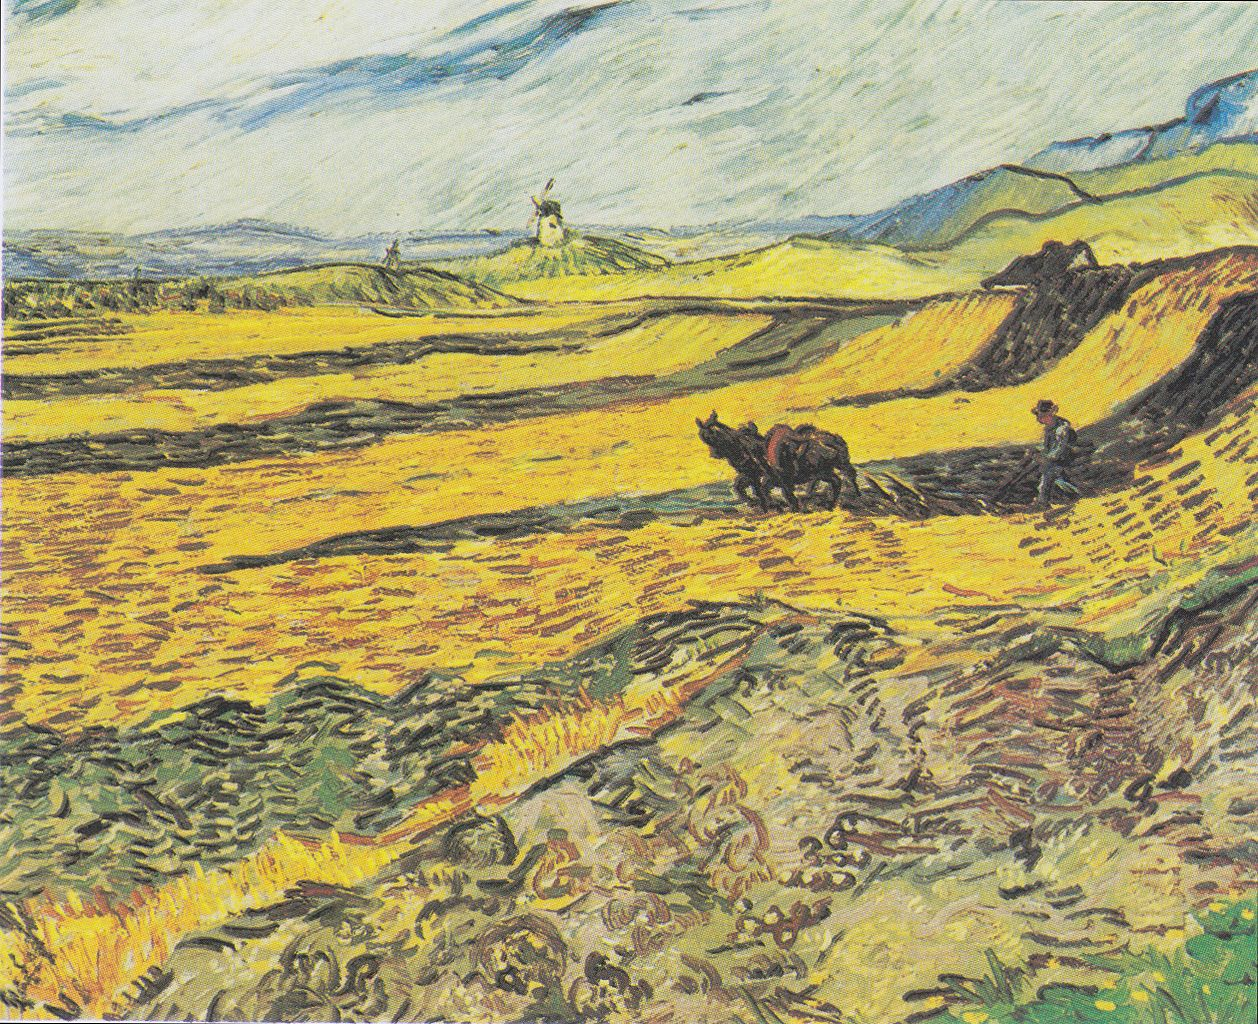 Vincent Van Gogh, Field with plowing farmer and mill, 1889 | © Museum of Fine Arts, Boston/WikiCommons